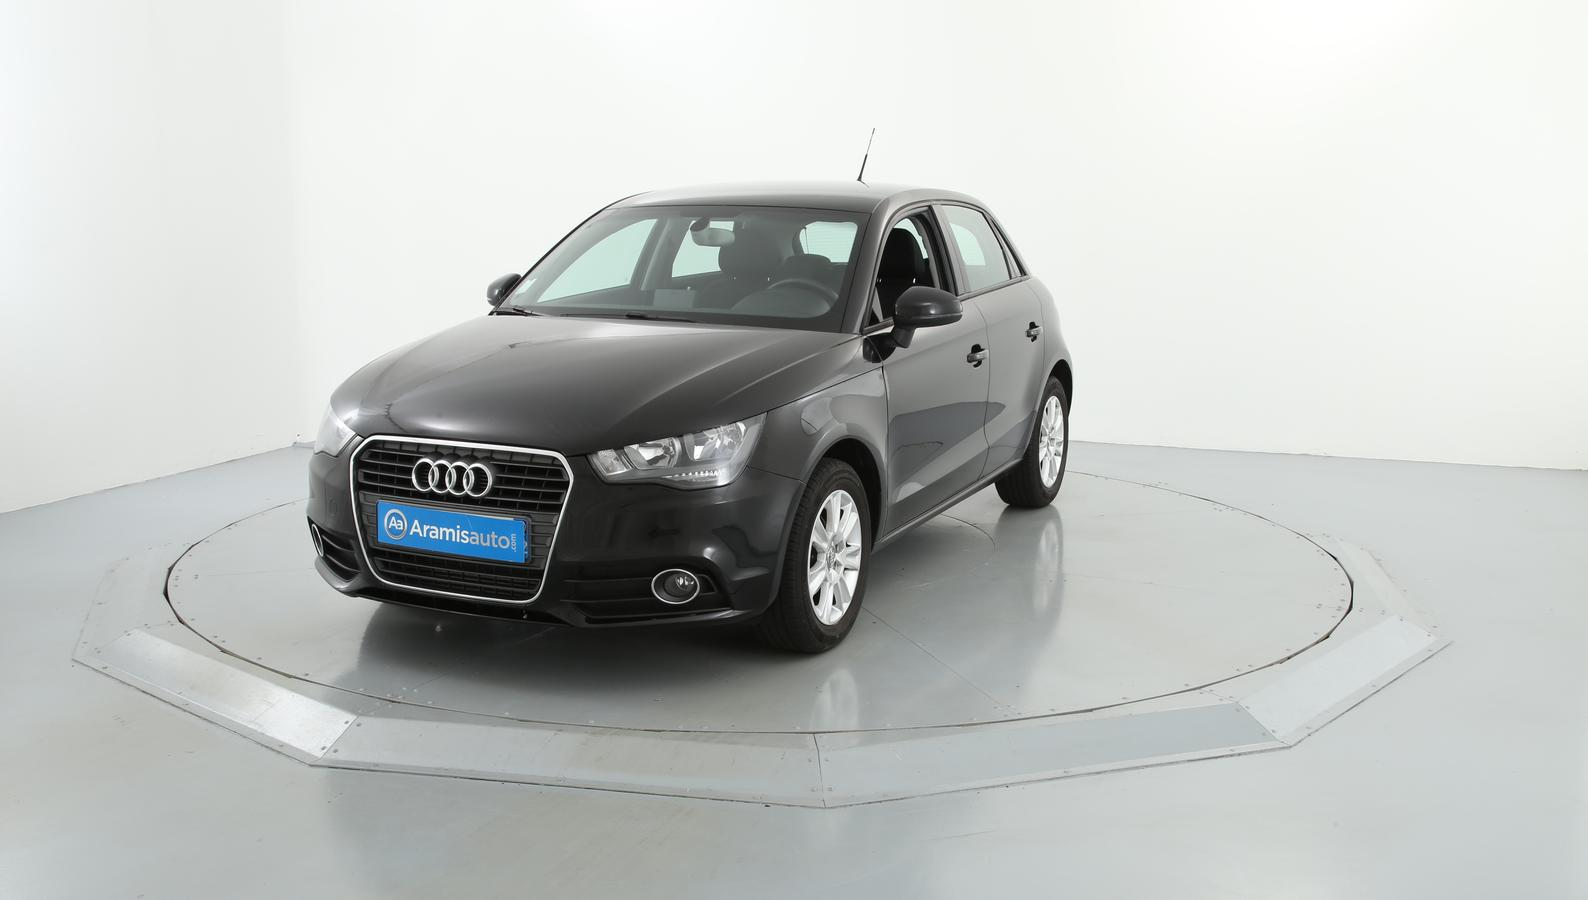 audi a1 sportback citadine 5 portes diesel 1 6 tdi. Black Bedroom Furniture Sets. Home Design Ideas